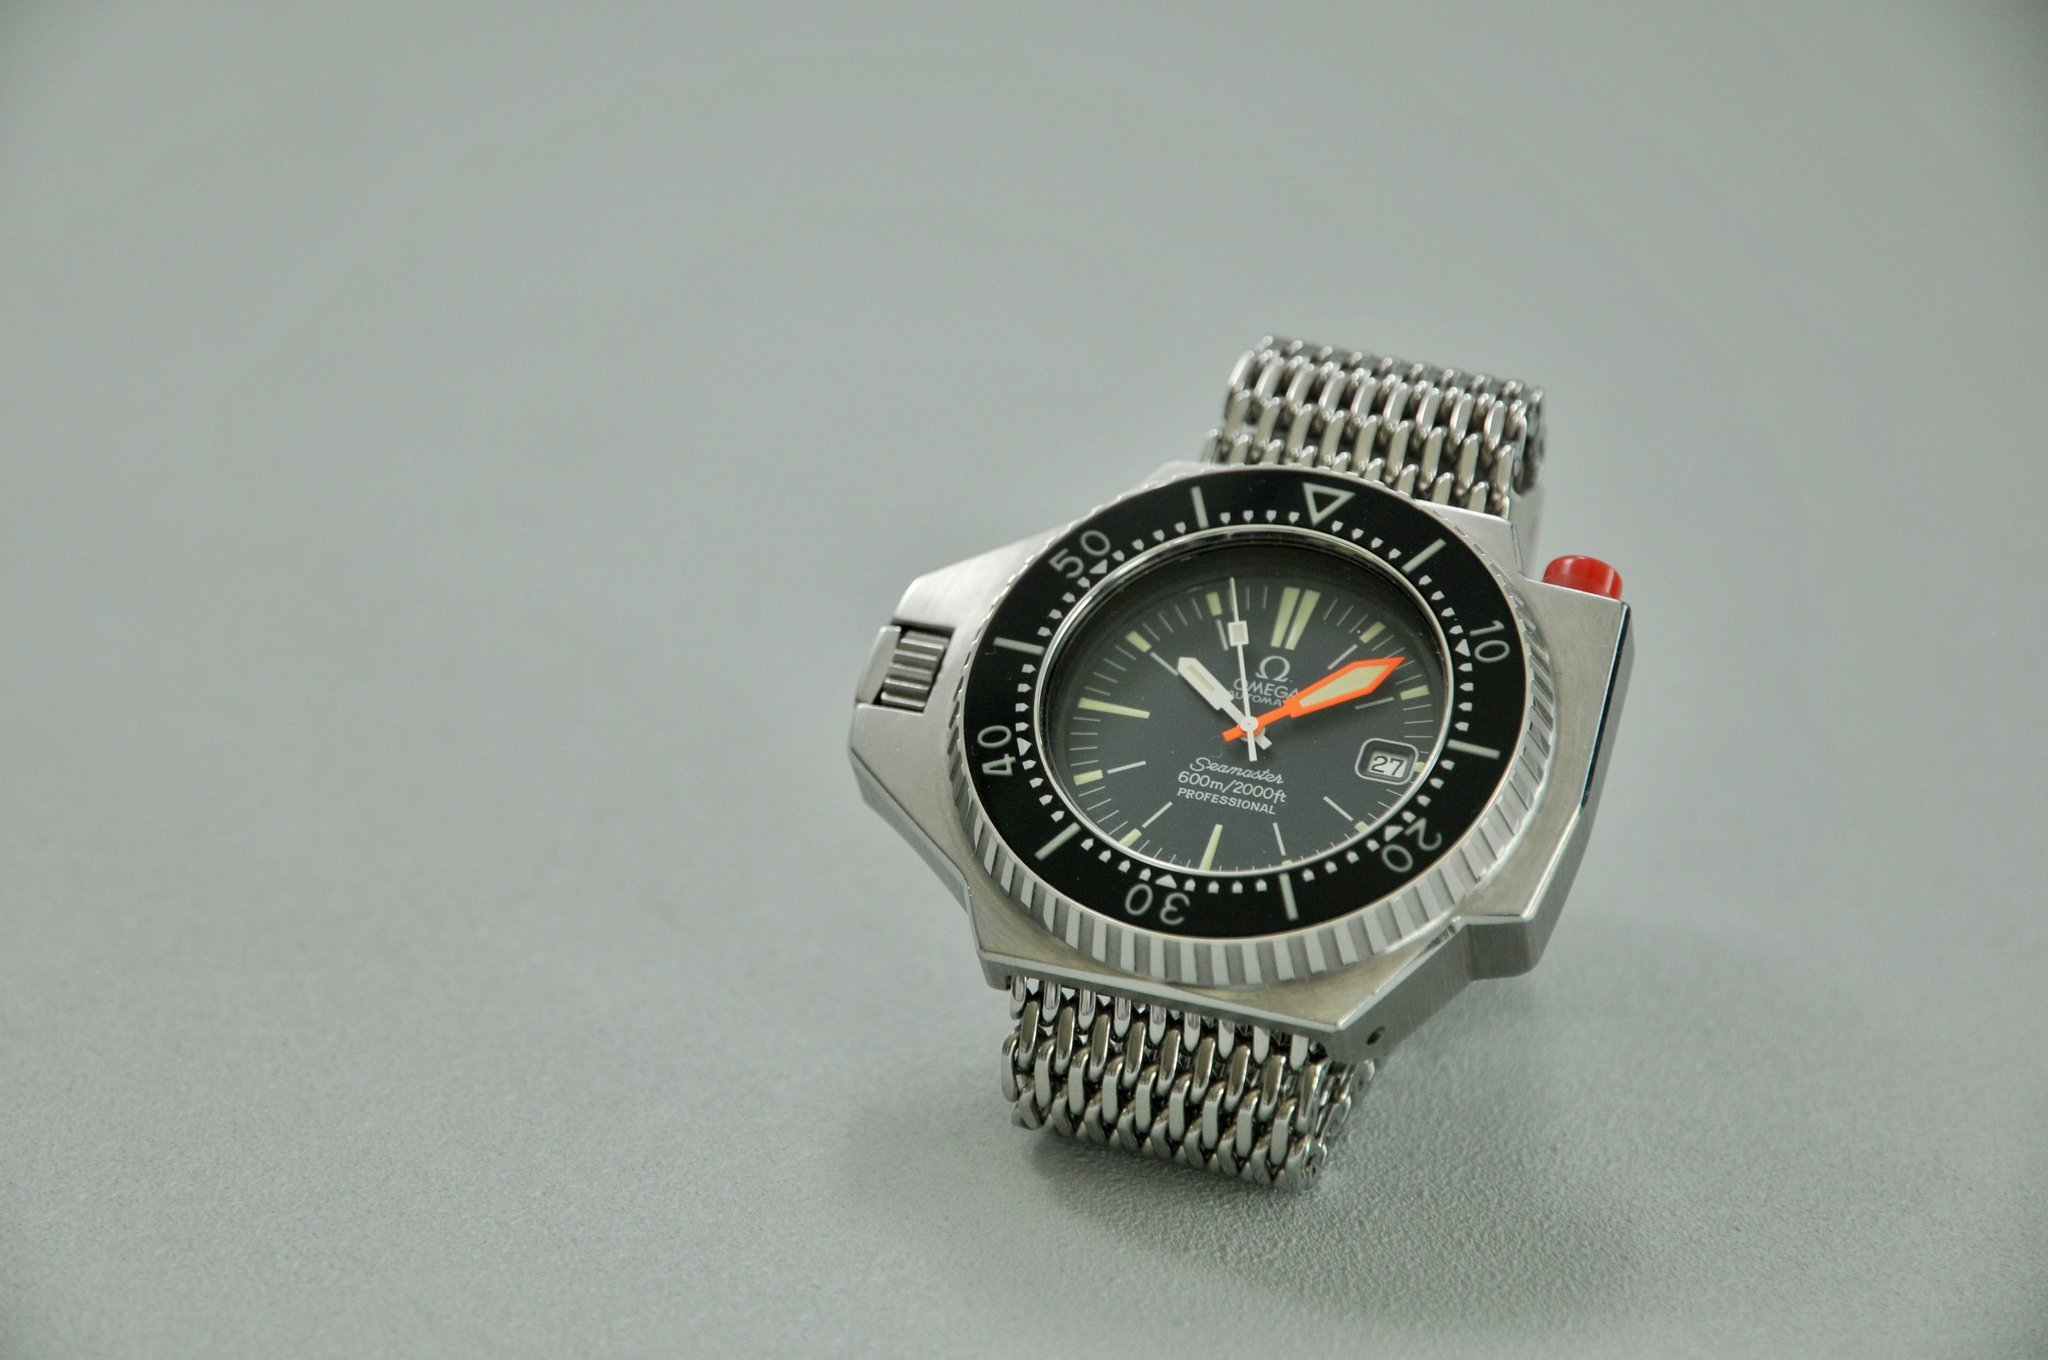 The Omega Seamaster 600 Ploprof is definitely not the smallest dive watch ever